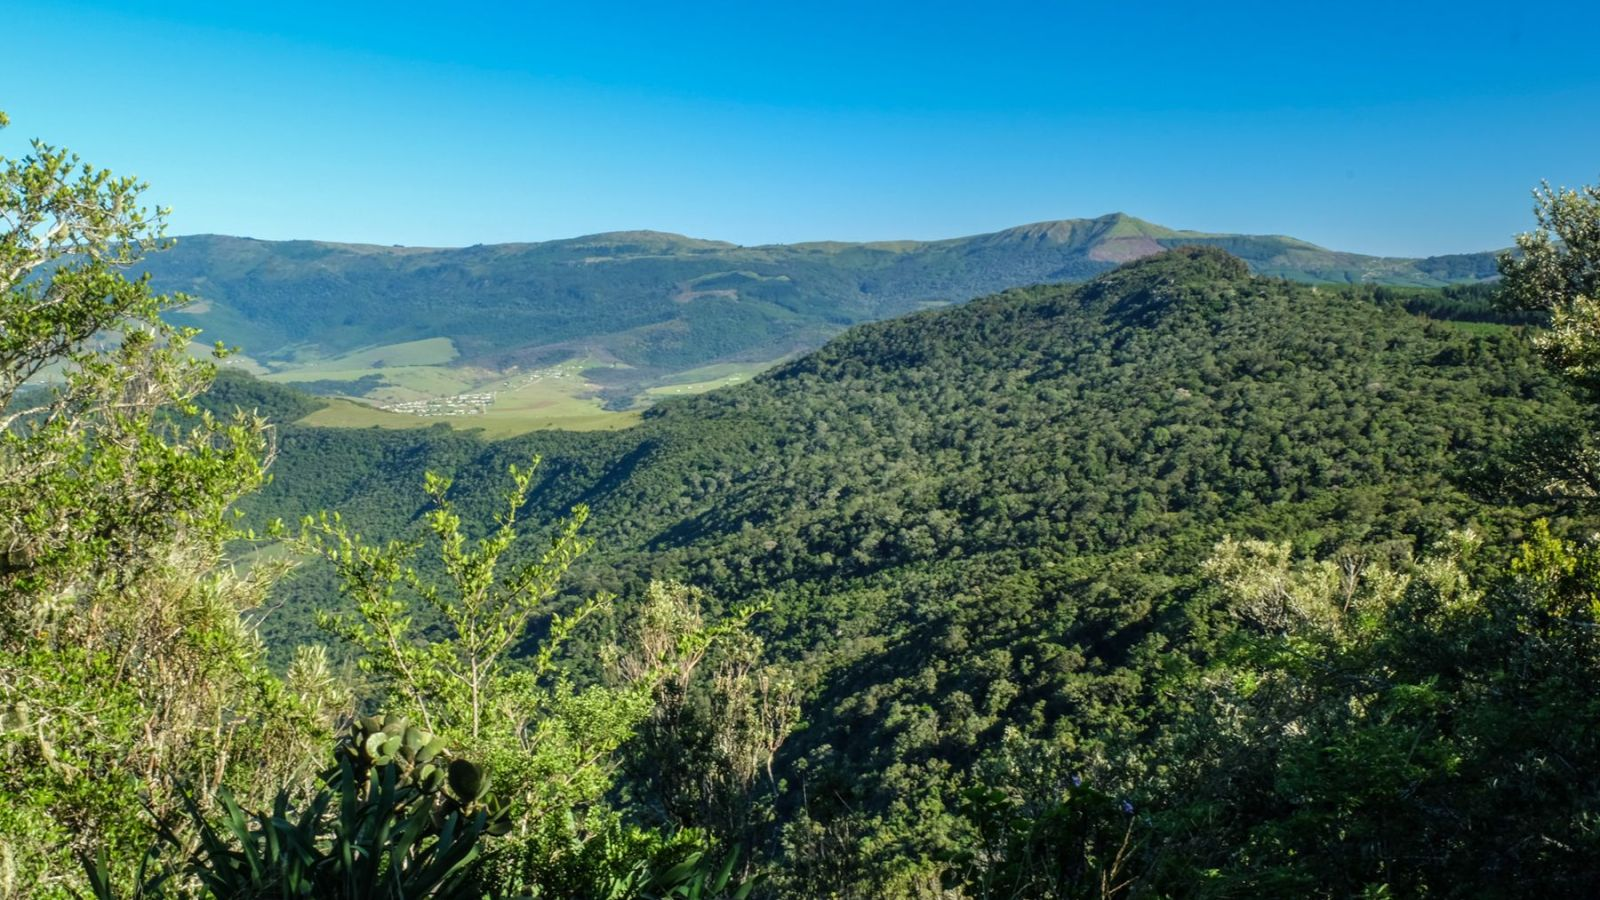 a photo of a valley taken from a hill on the amathole trail.